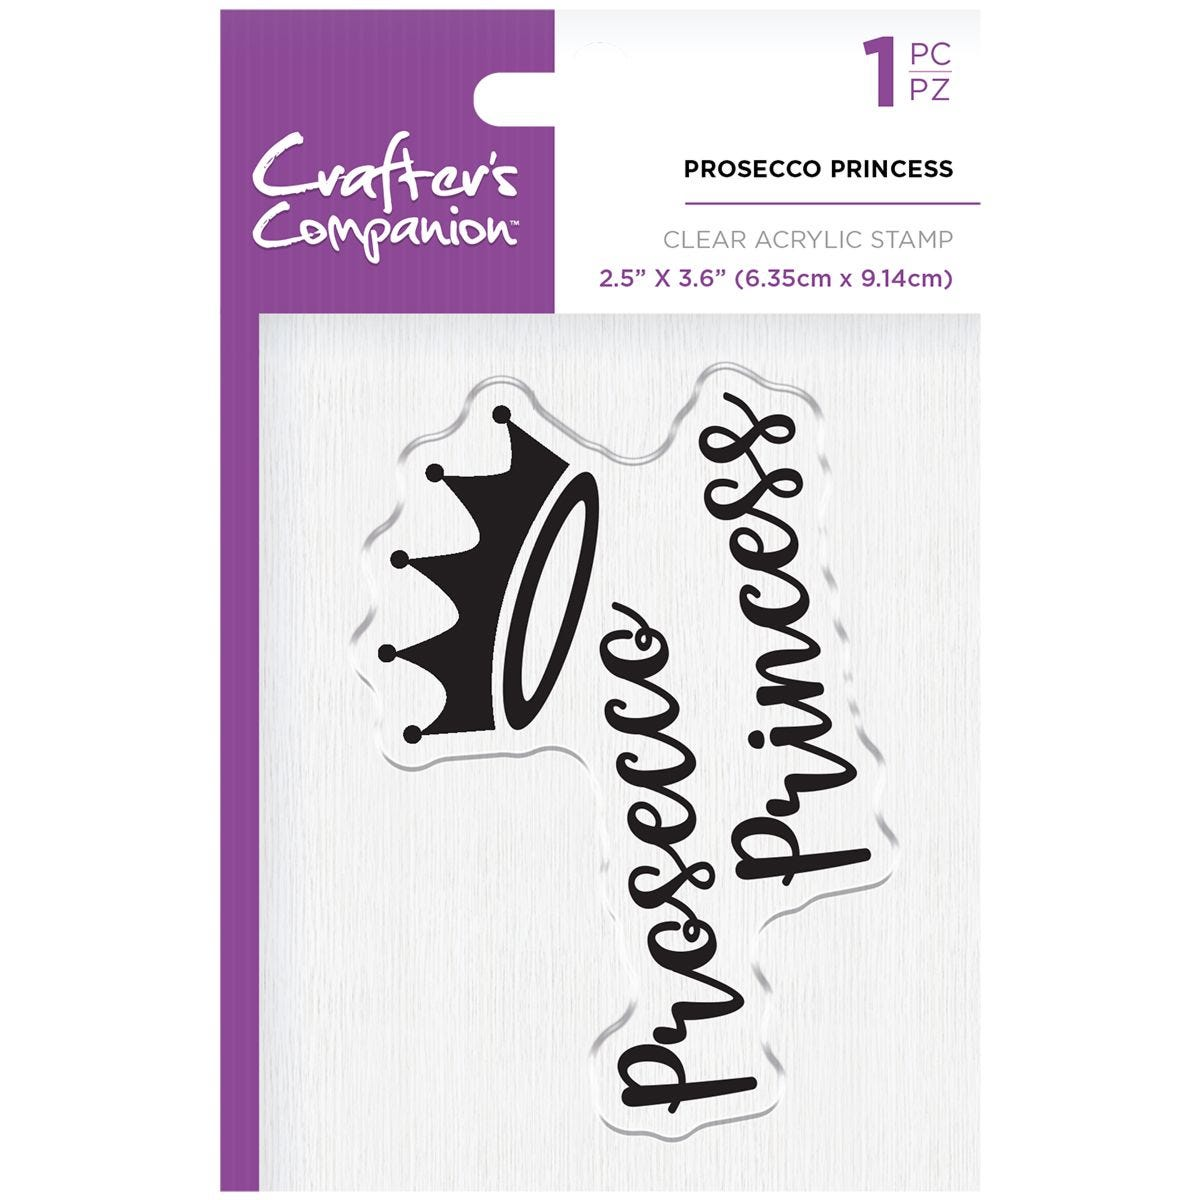 Crafter's Companion Clear Acrylic Stamps - Prosecco Princess